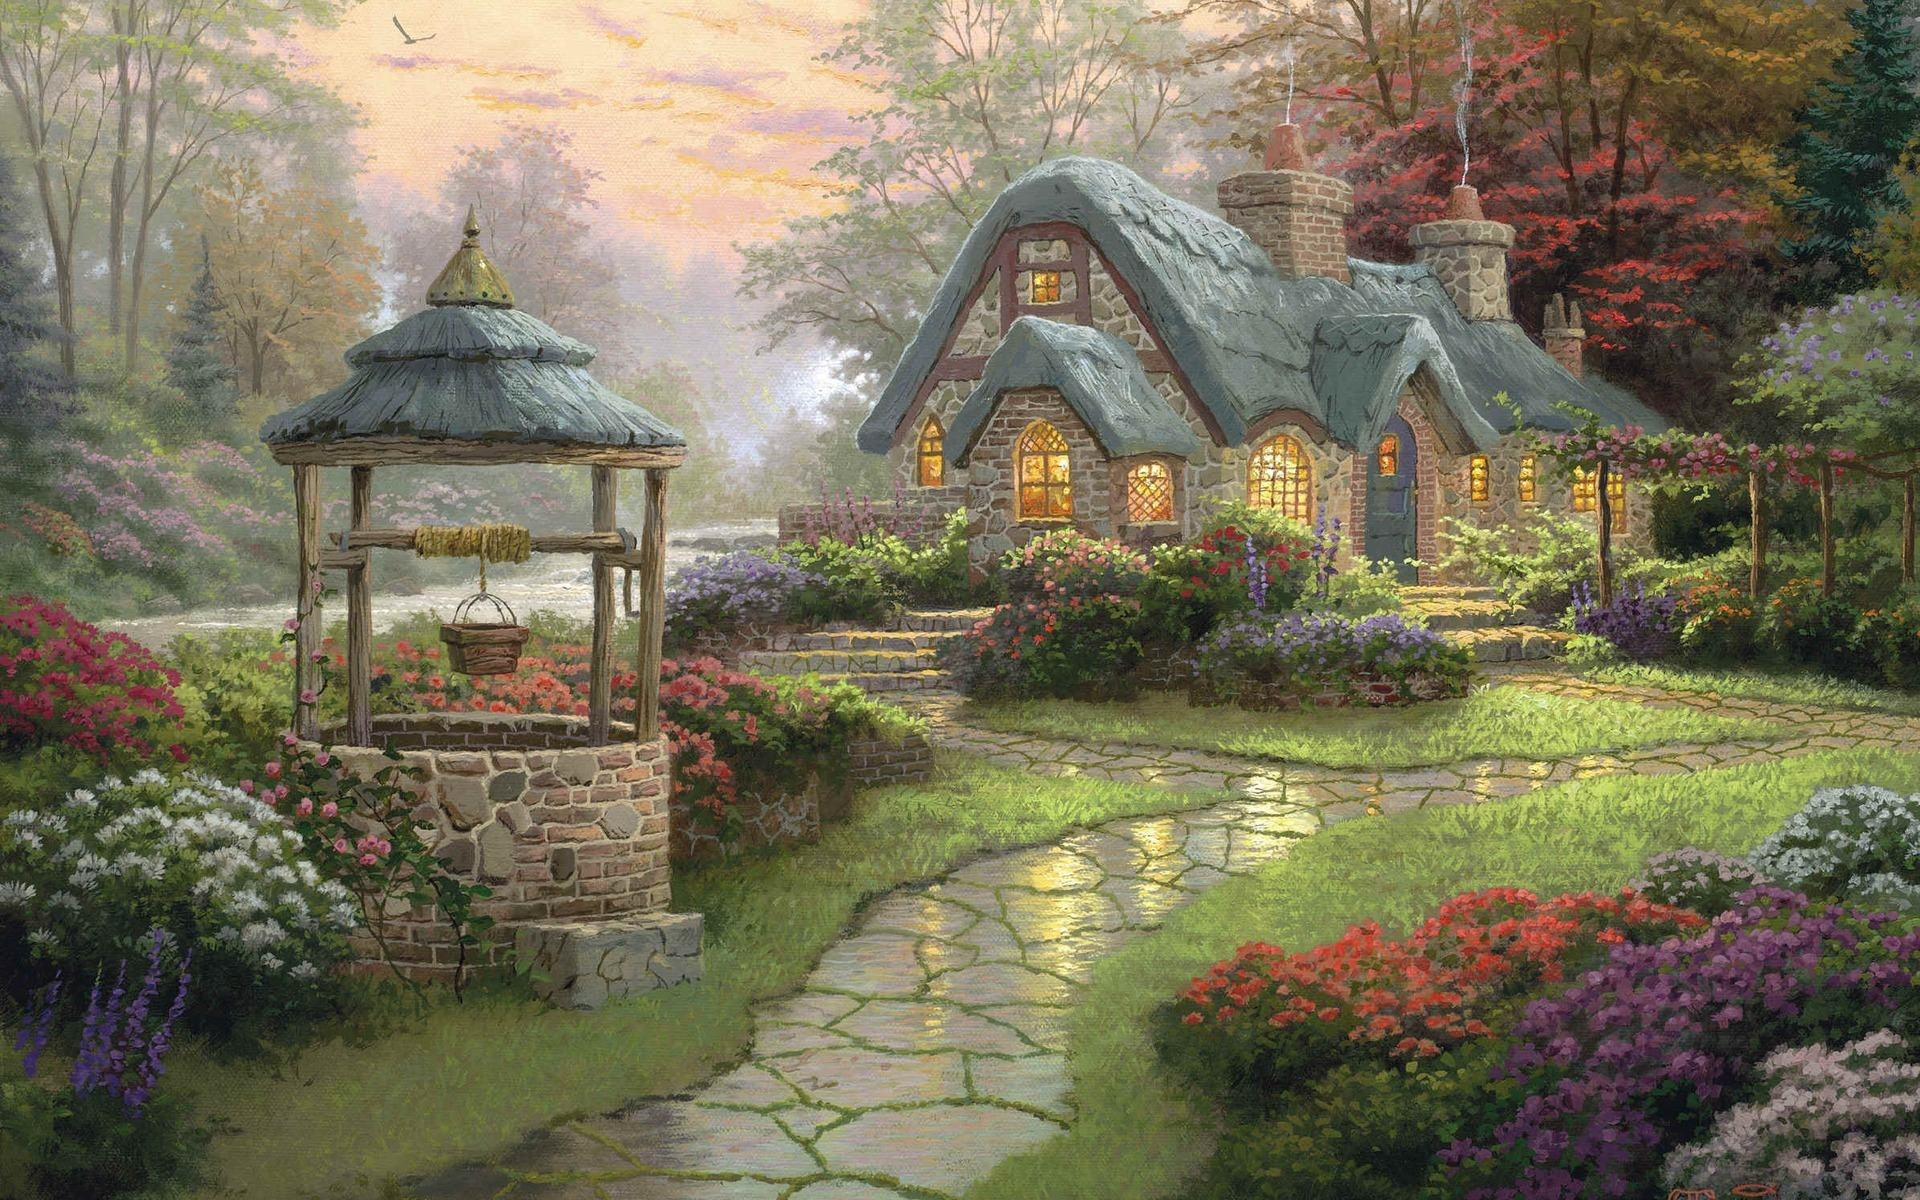 Wallpapers Backgrounds – landscape painting cottage wood flowers kinkade  thomas wallpapers